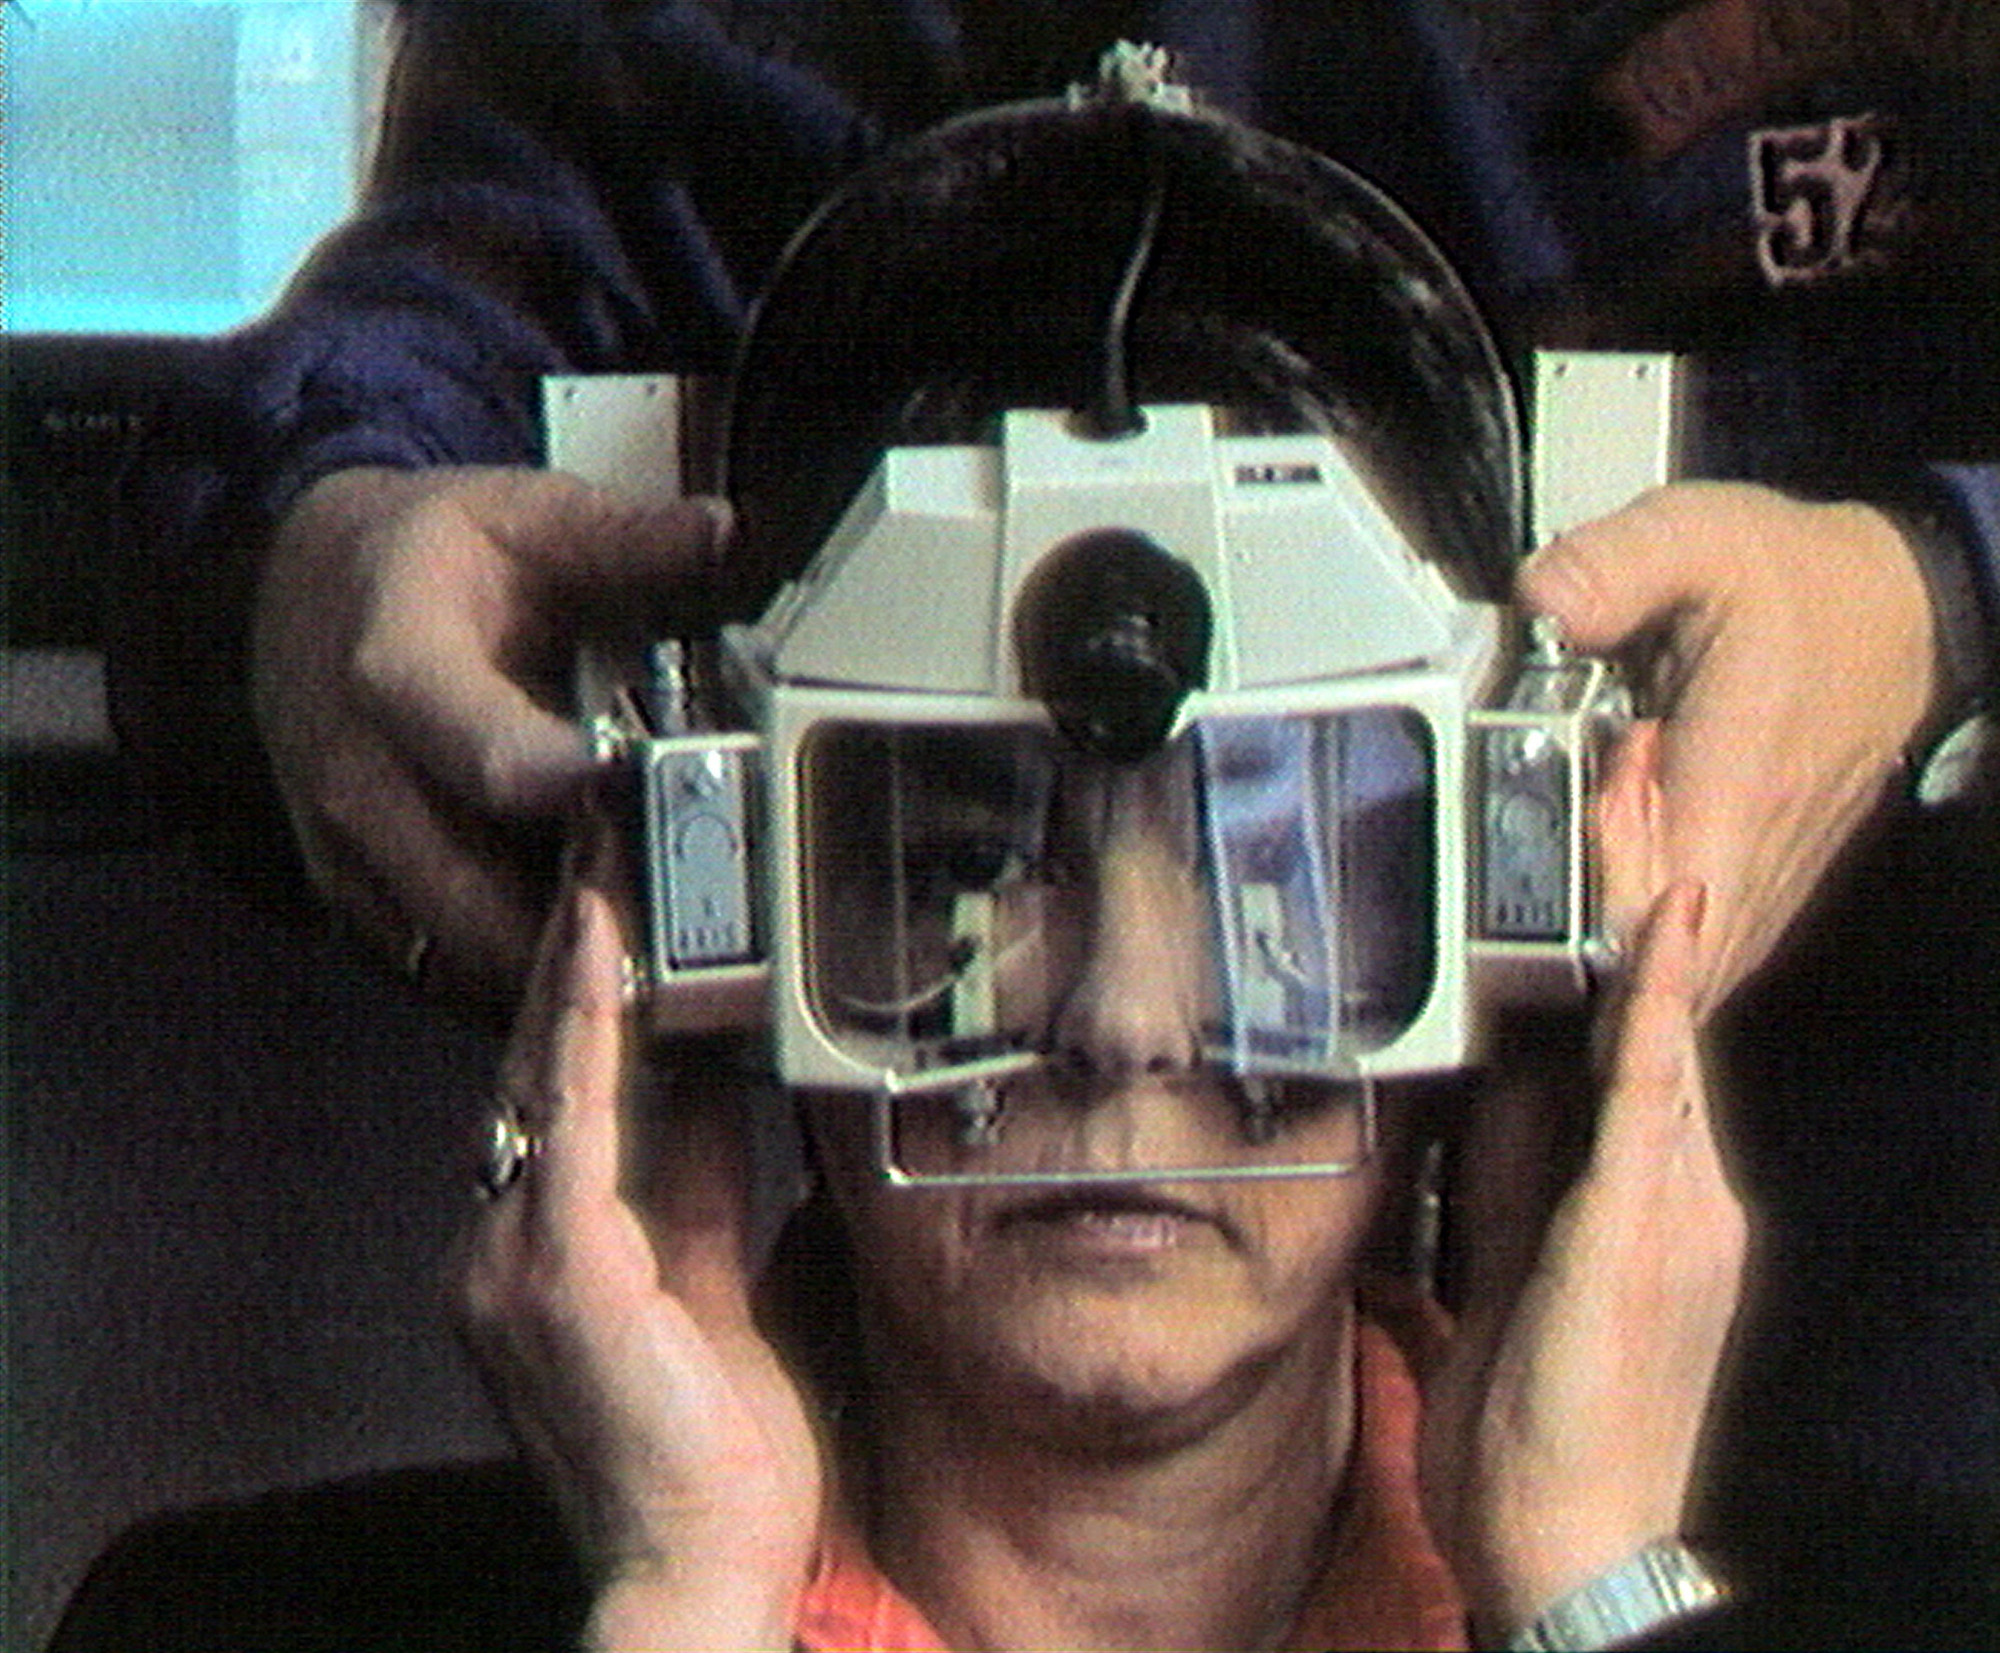 Harun Farocki. What's Up?. 1991